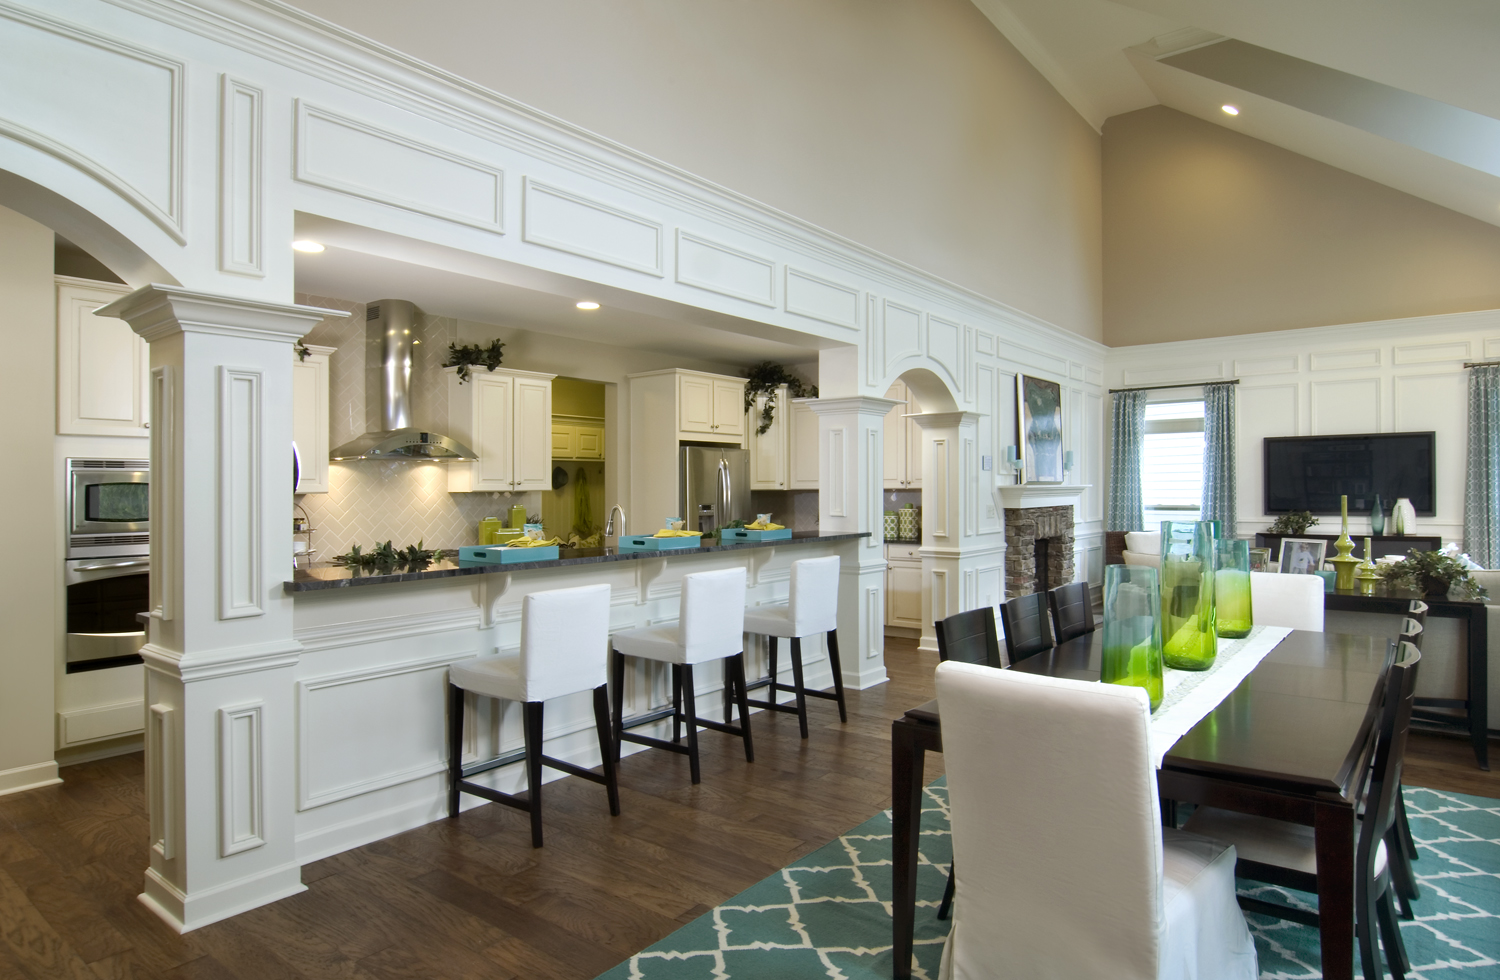 Shea homes opens new model home in winding walk for New model kitchen